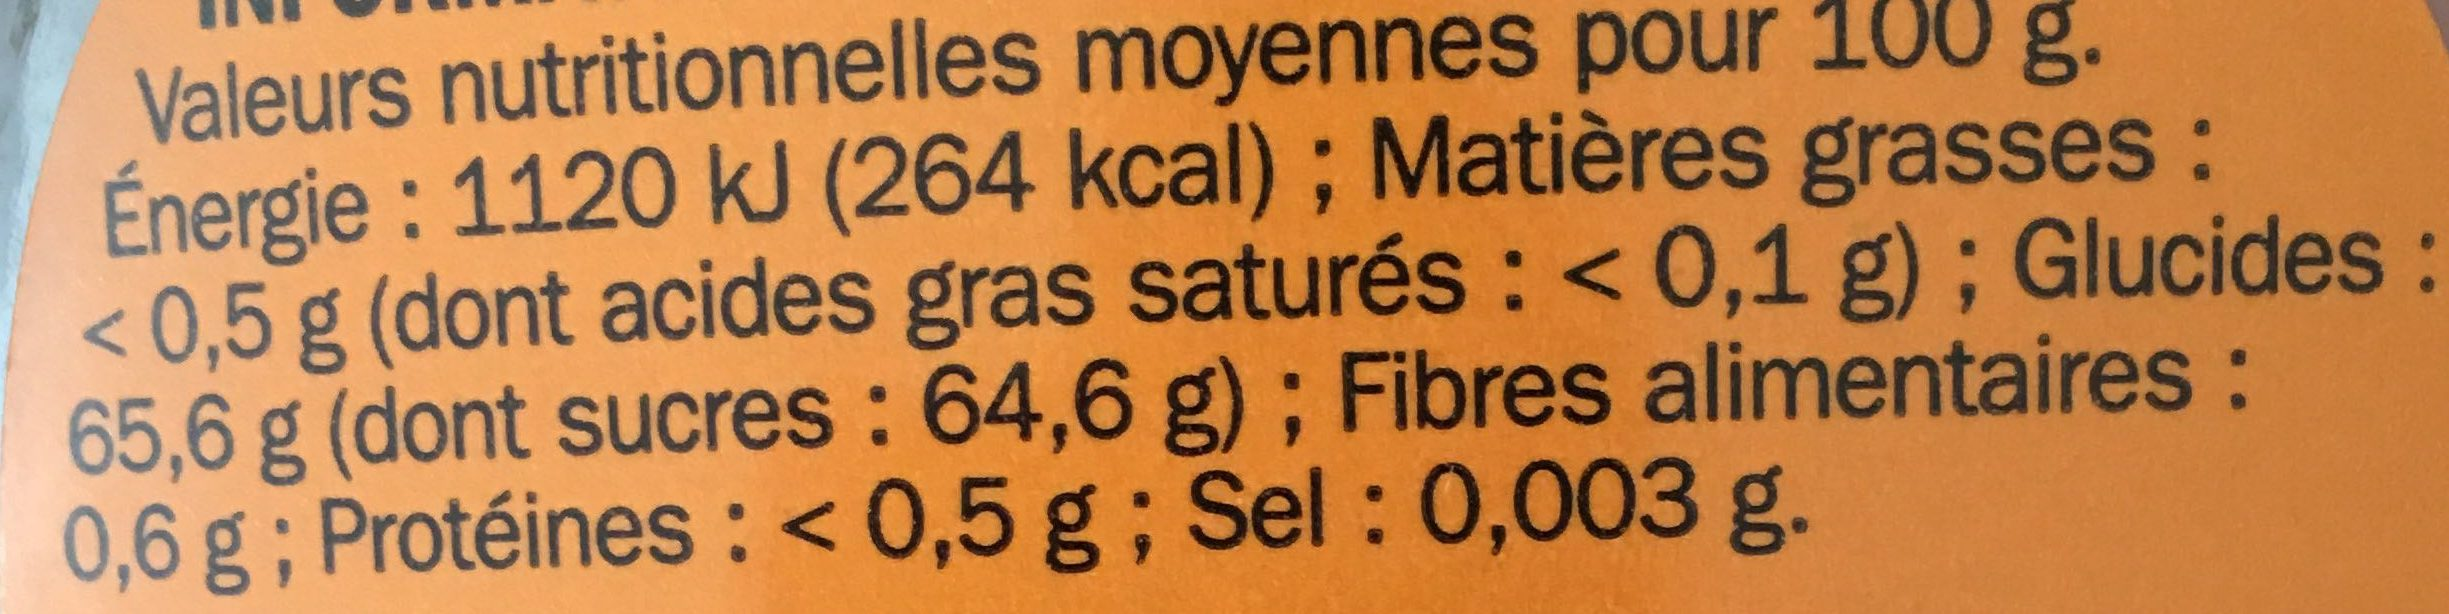 Pur sirop d'Erable - Nutrition facts